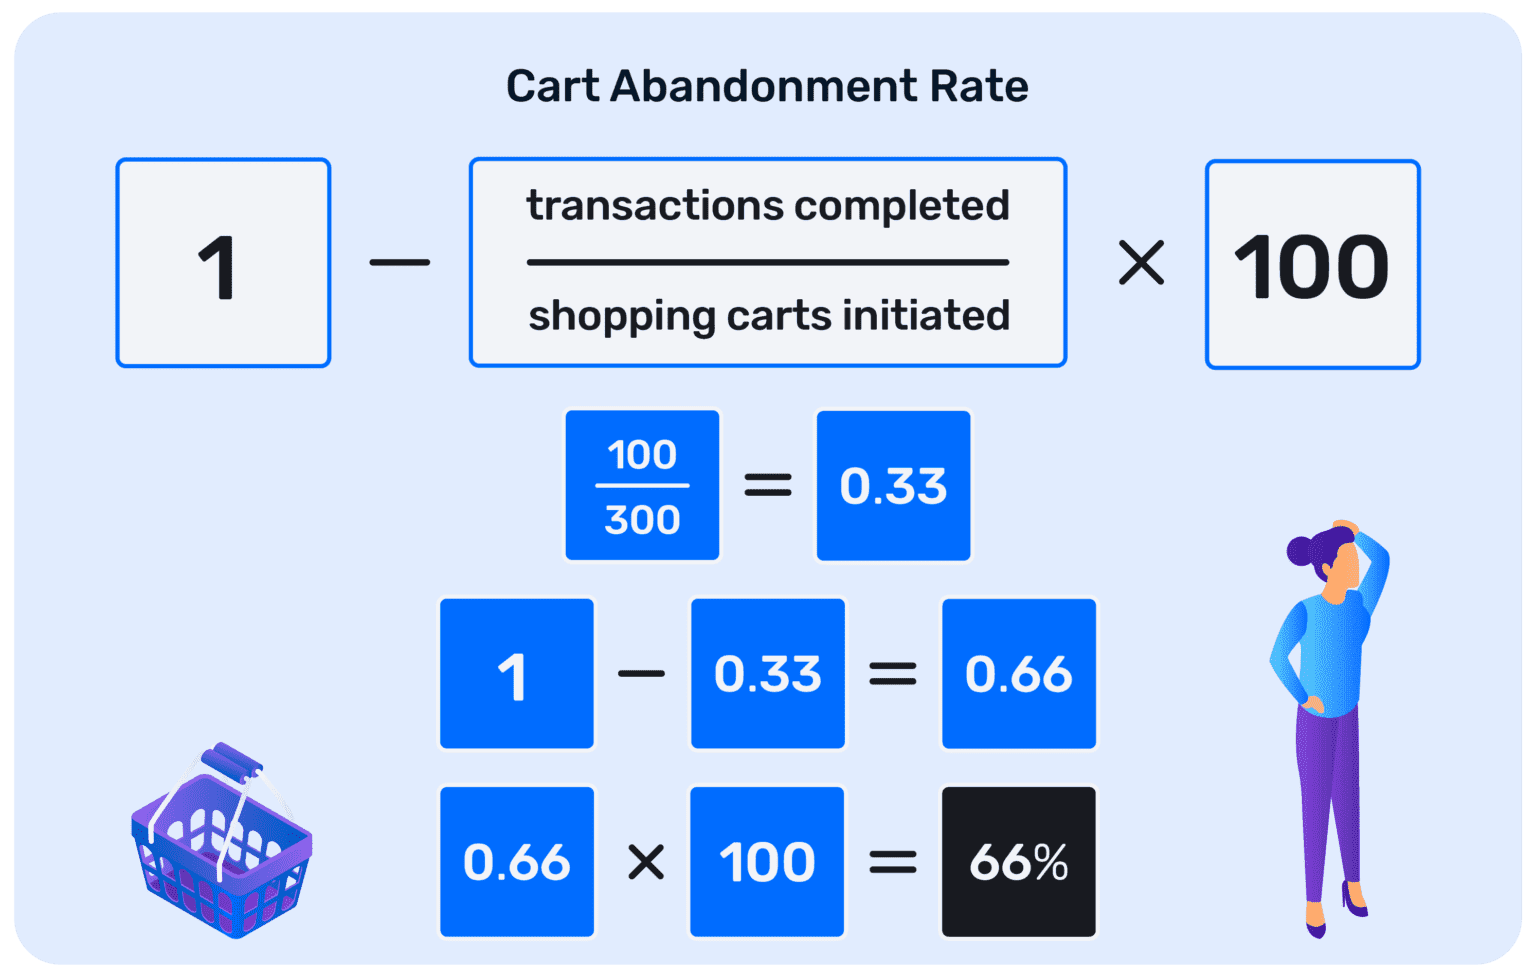 How do we calculate the cart abandonment rate for an online store?